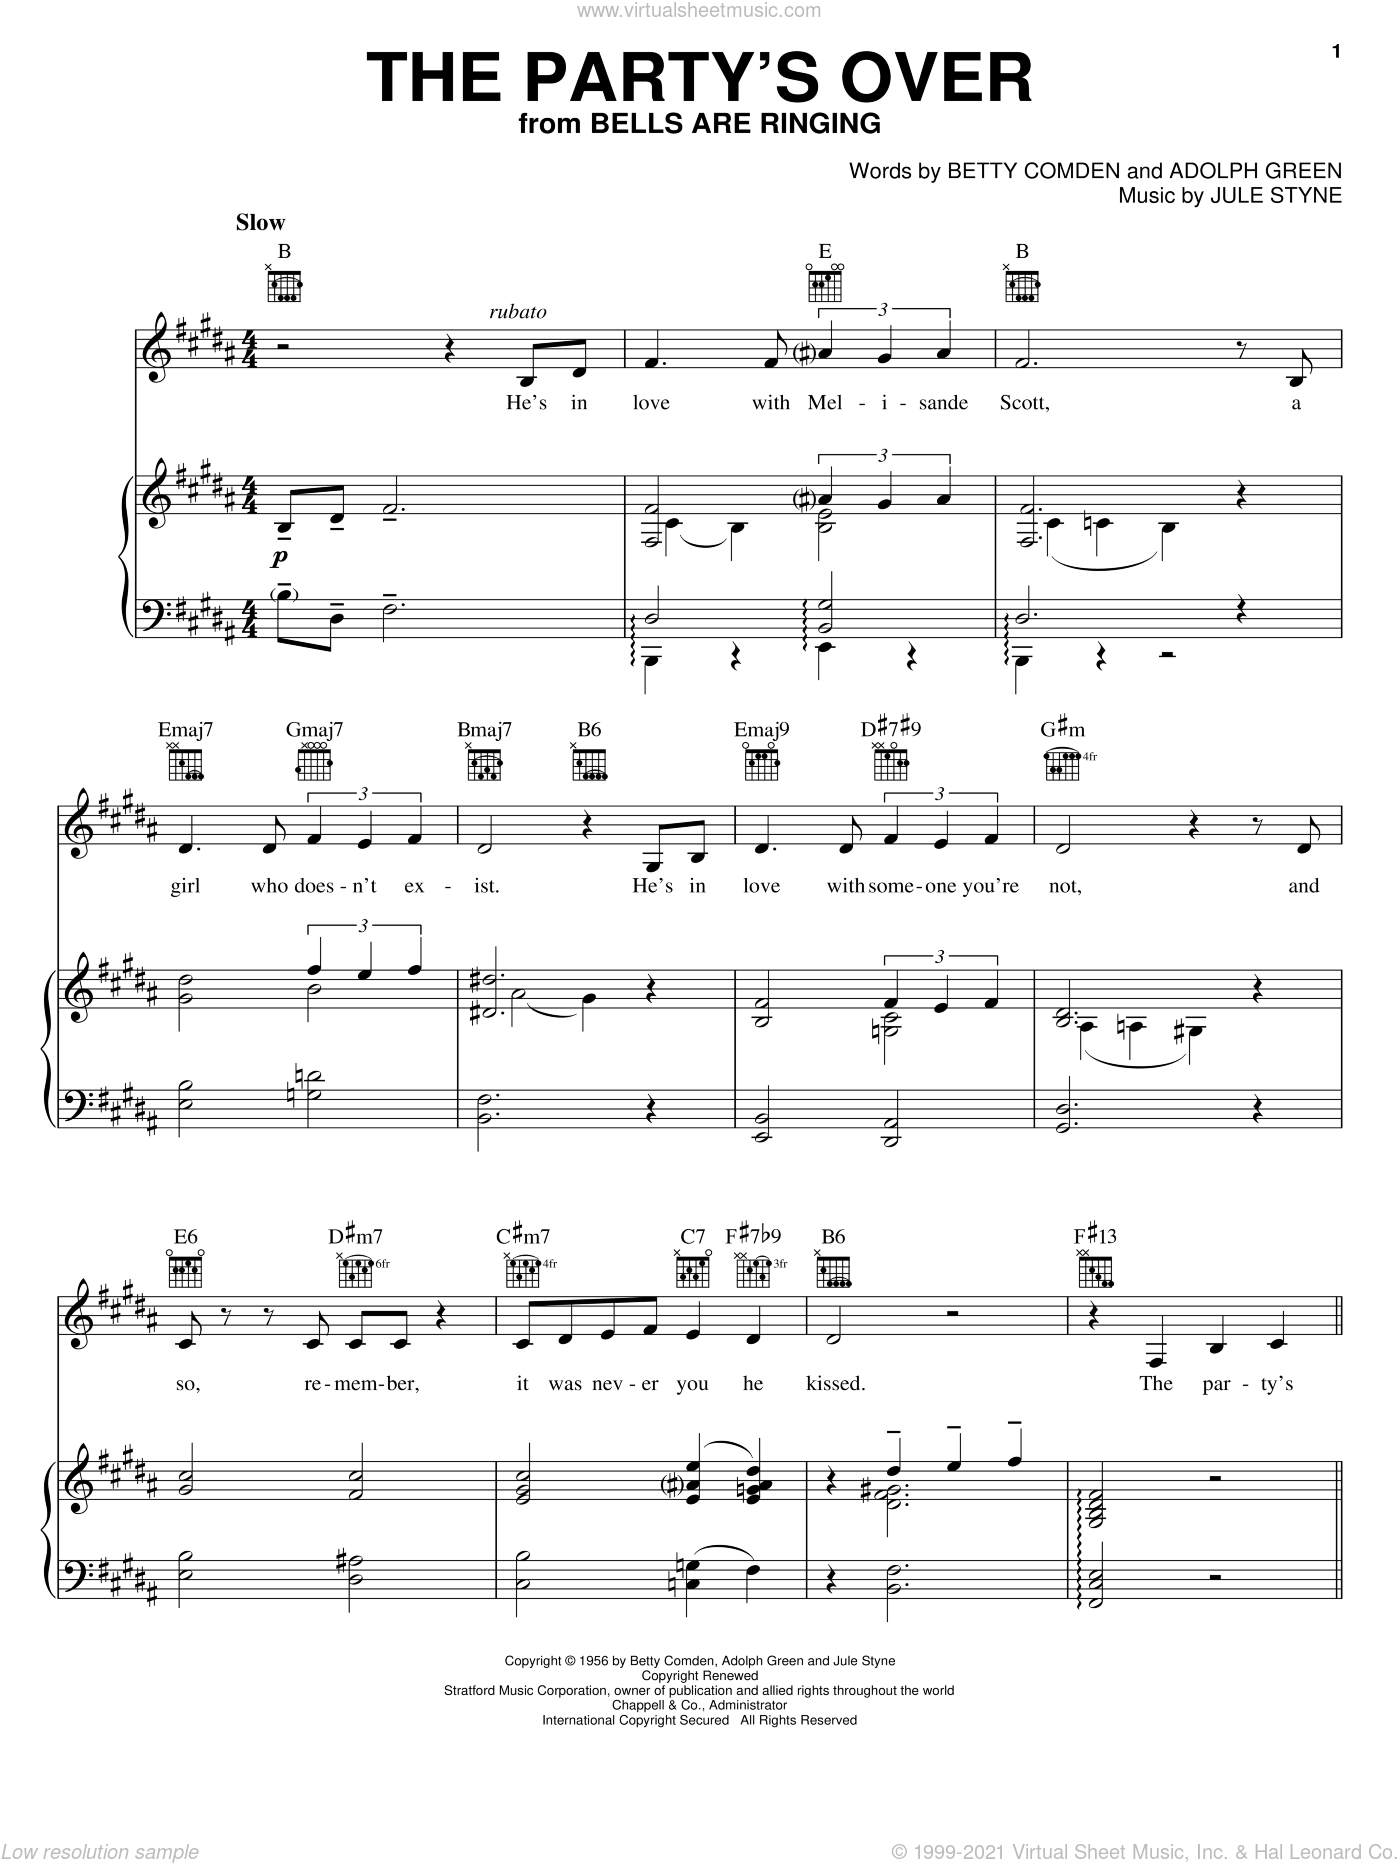 The Party's Over sheet music for voice, piano or guitar by Jule Styne, Adolph Green and Betty Comden, intermediate. Score Image Preview.